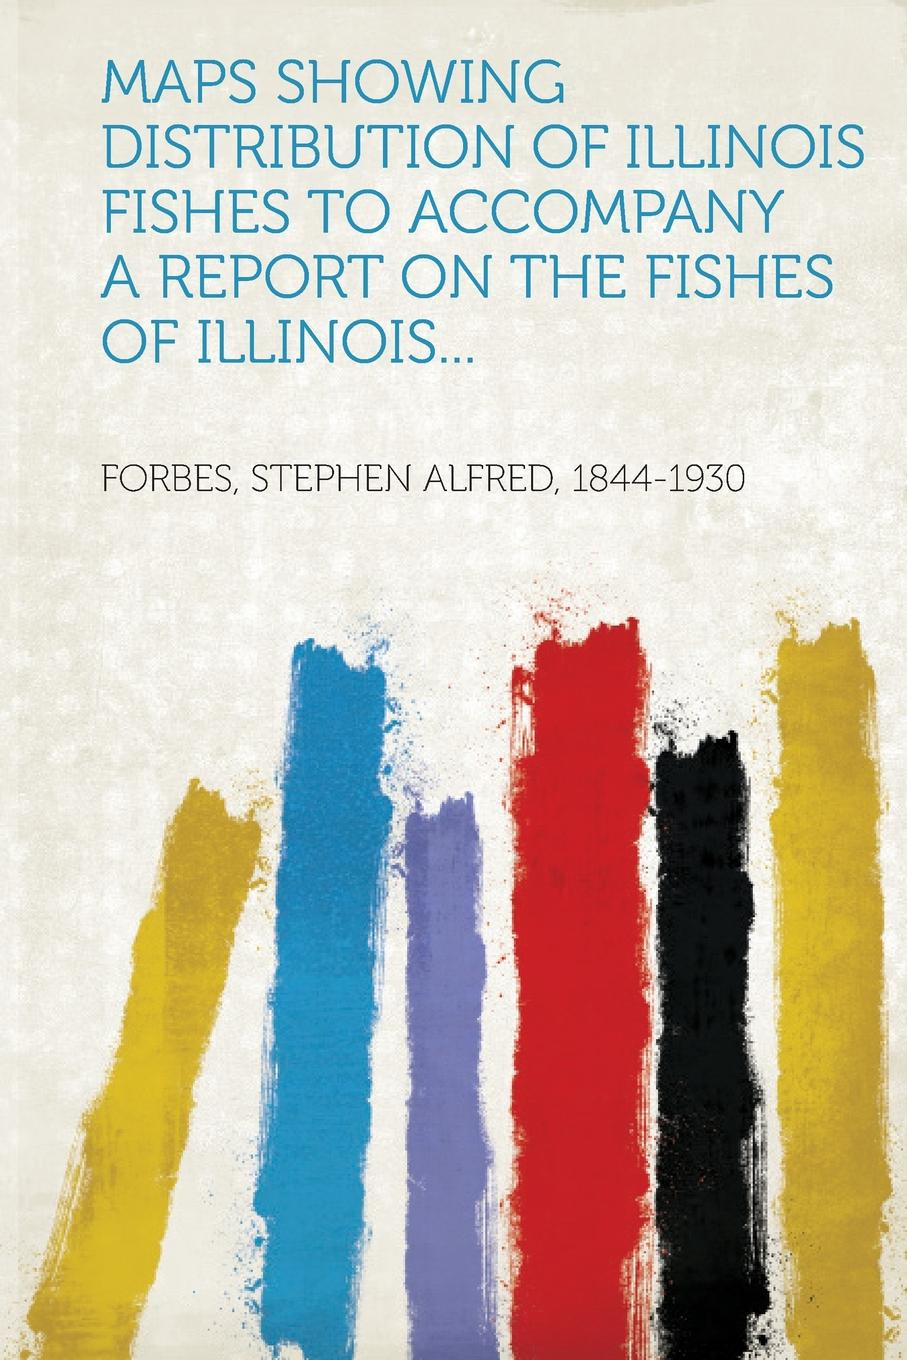 Stephen Alfred Forbes Maps Showing Distribution of Illinois Fishes to Accompany a Report on the Illinois...